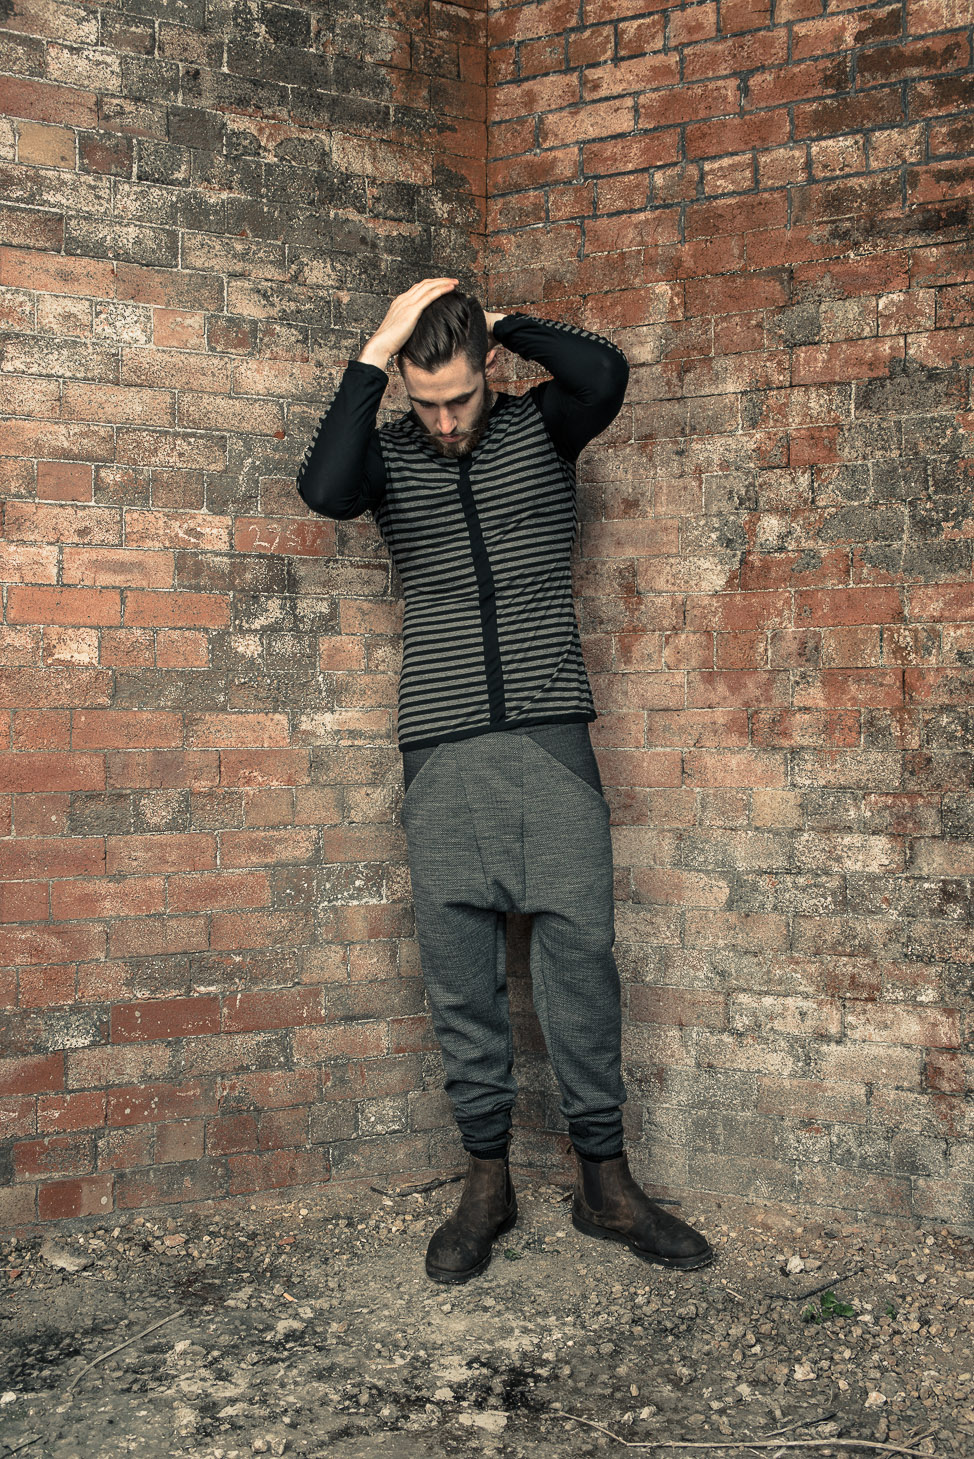 zaramia-ava-zaramiaava-leeds-fashion-designer-ethical-sustainable-tailored-minimalist-fitted-versatile-drape-kobe-grey-tshirt-top-hareem-trousers-black-grey-texture-styling-menswear-model-30